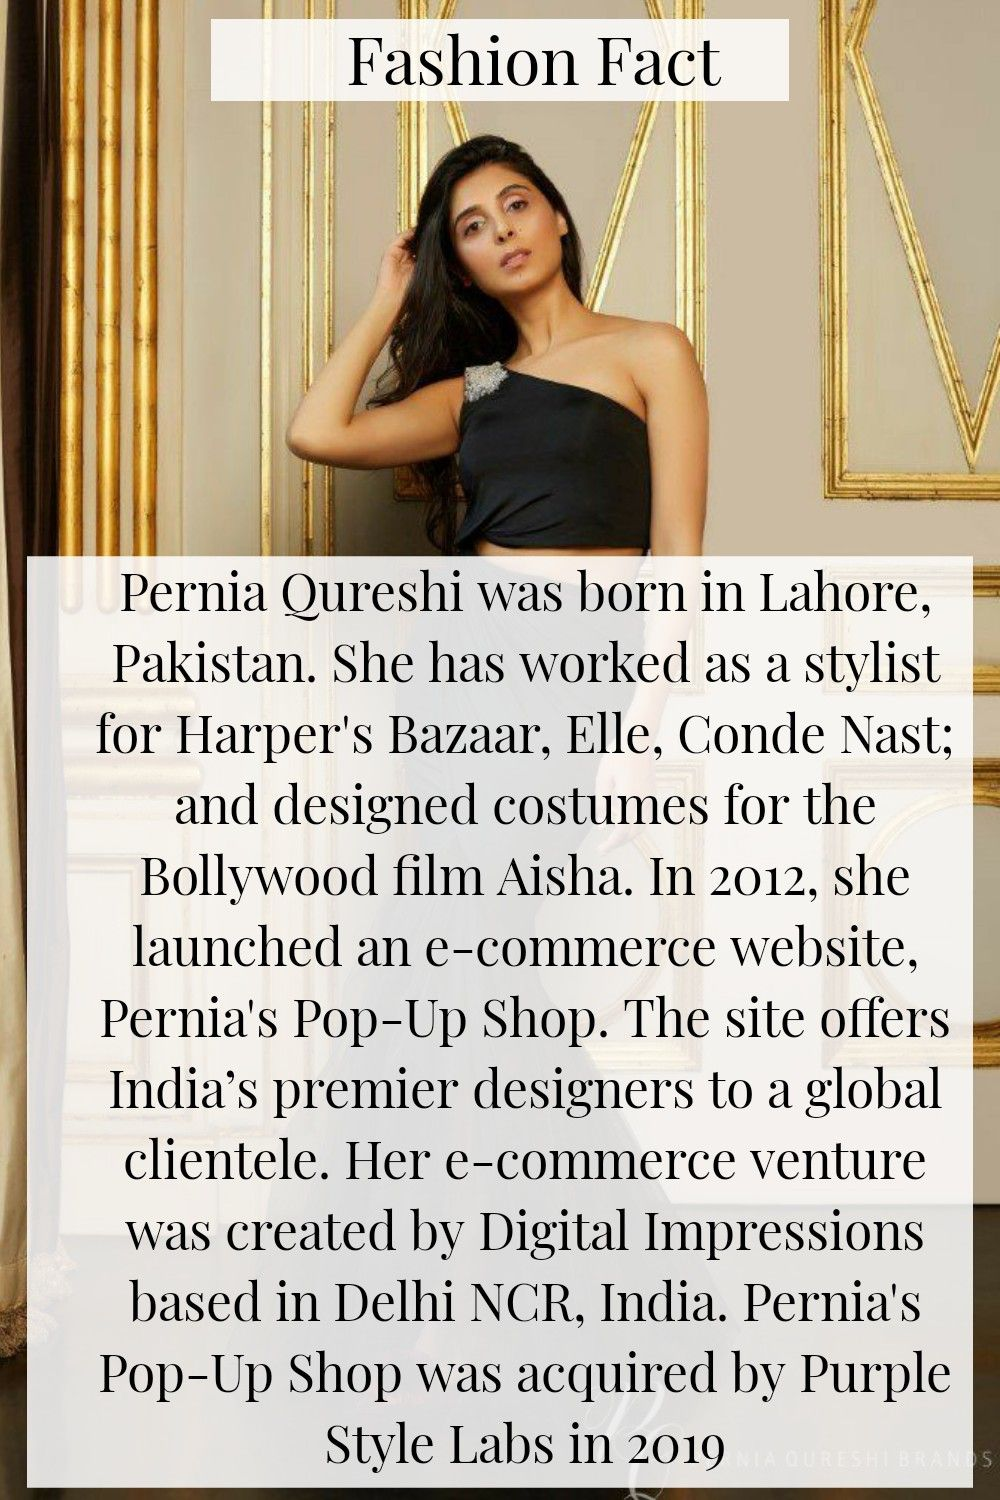 Fashion Fact Of The Day! #perniaqureshi #FactCheck #Fact #Facts #FactsMatter #FactsAreFriendly #FactsAboutMe #FactsNotFear #factsonly  #ThursdayThoughts #ThursdayMotivation #thursdaymorning #thursdayvibes #iknockfashion #elloracreationspvtltd